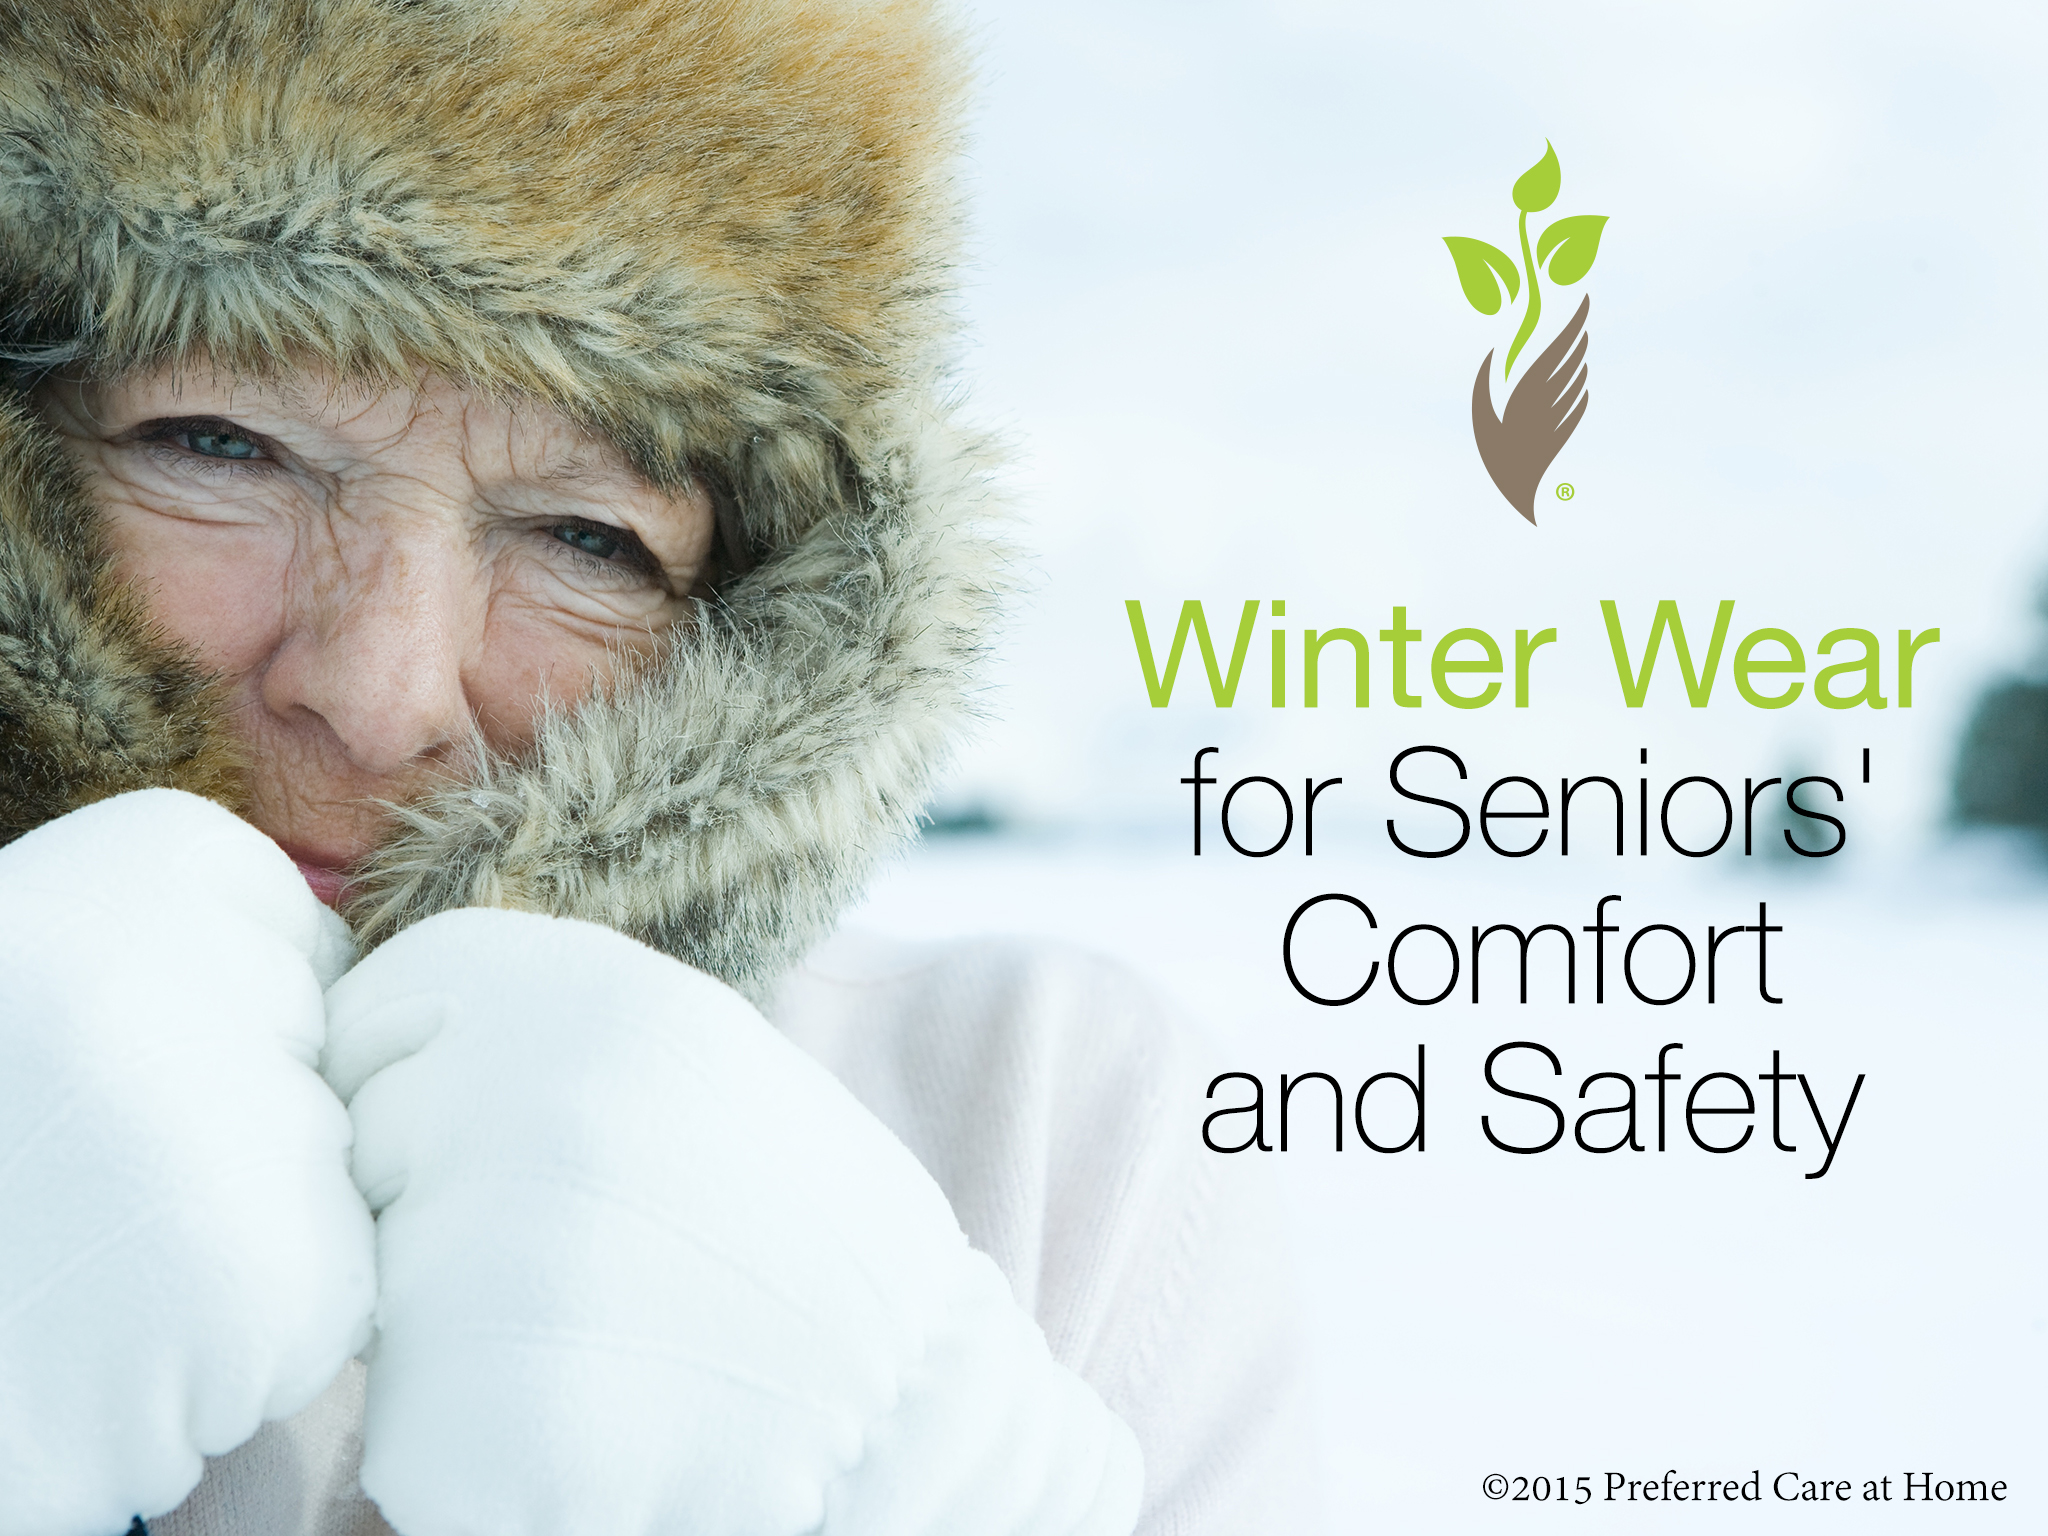 Winter Wear for Seniors' Comfort and Safety